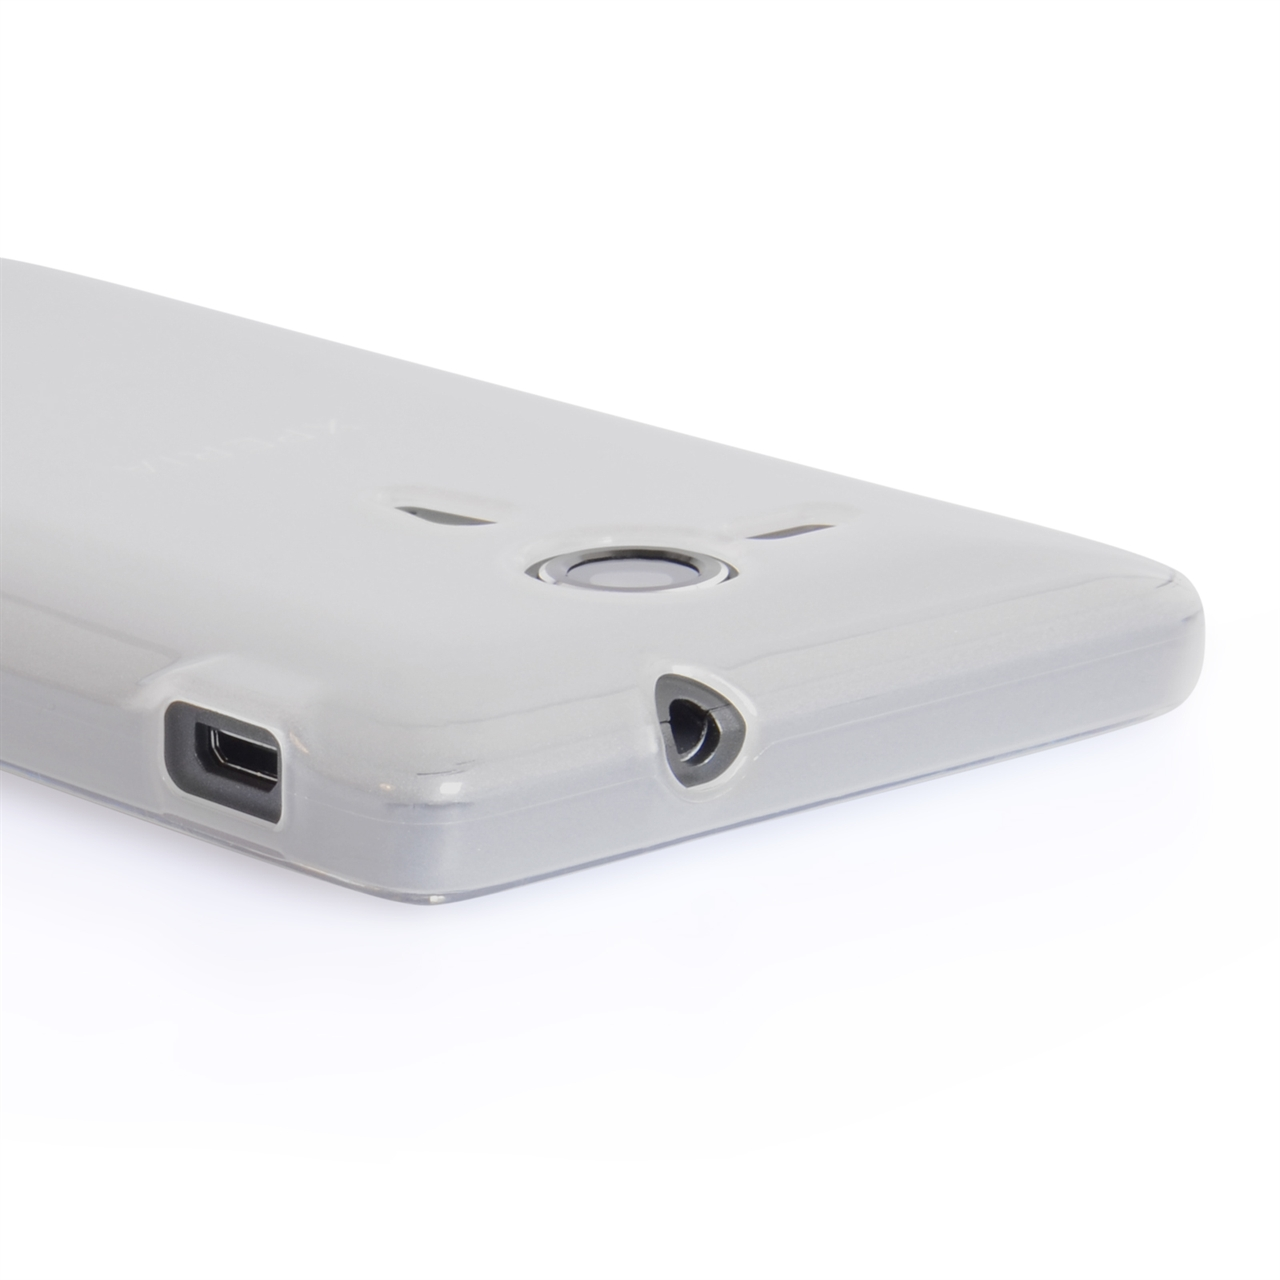 YouSave Accessories Sony Xperia SP Gel Case - Clear